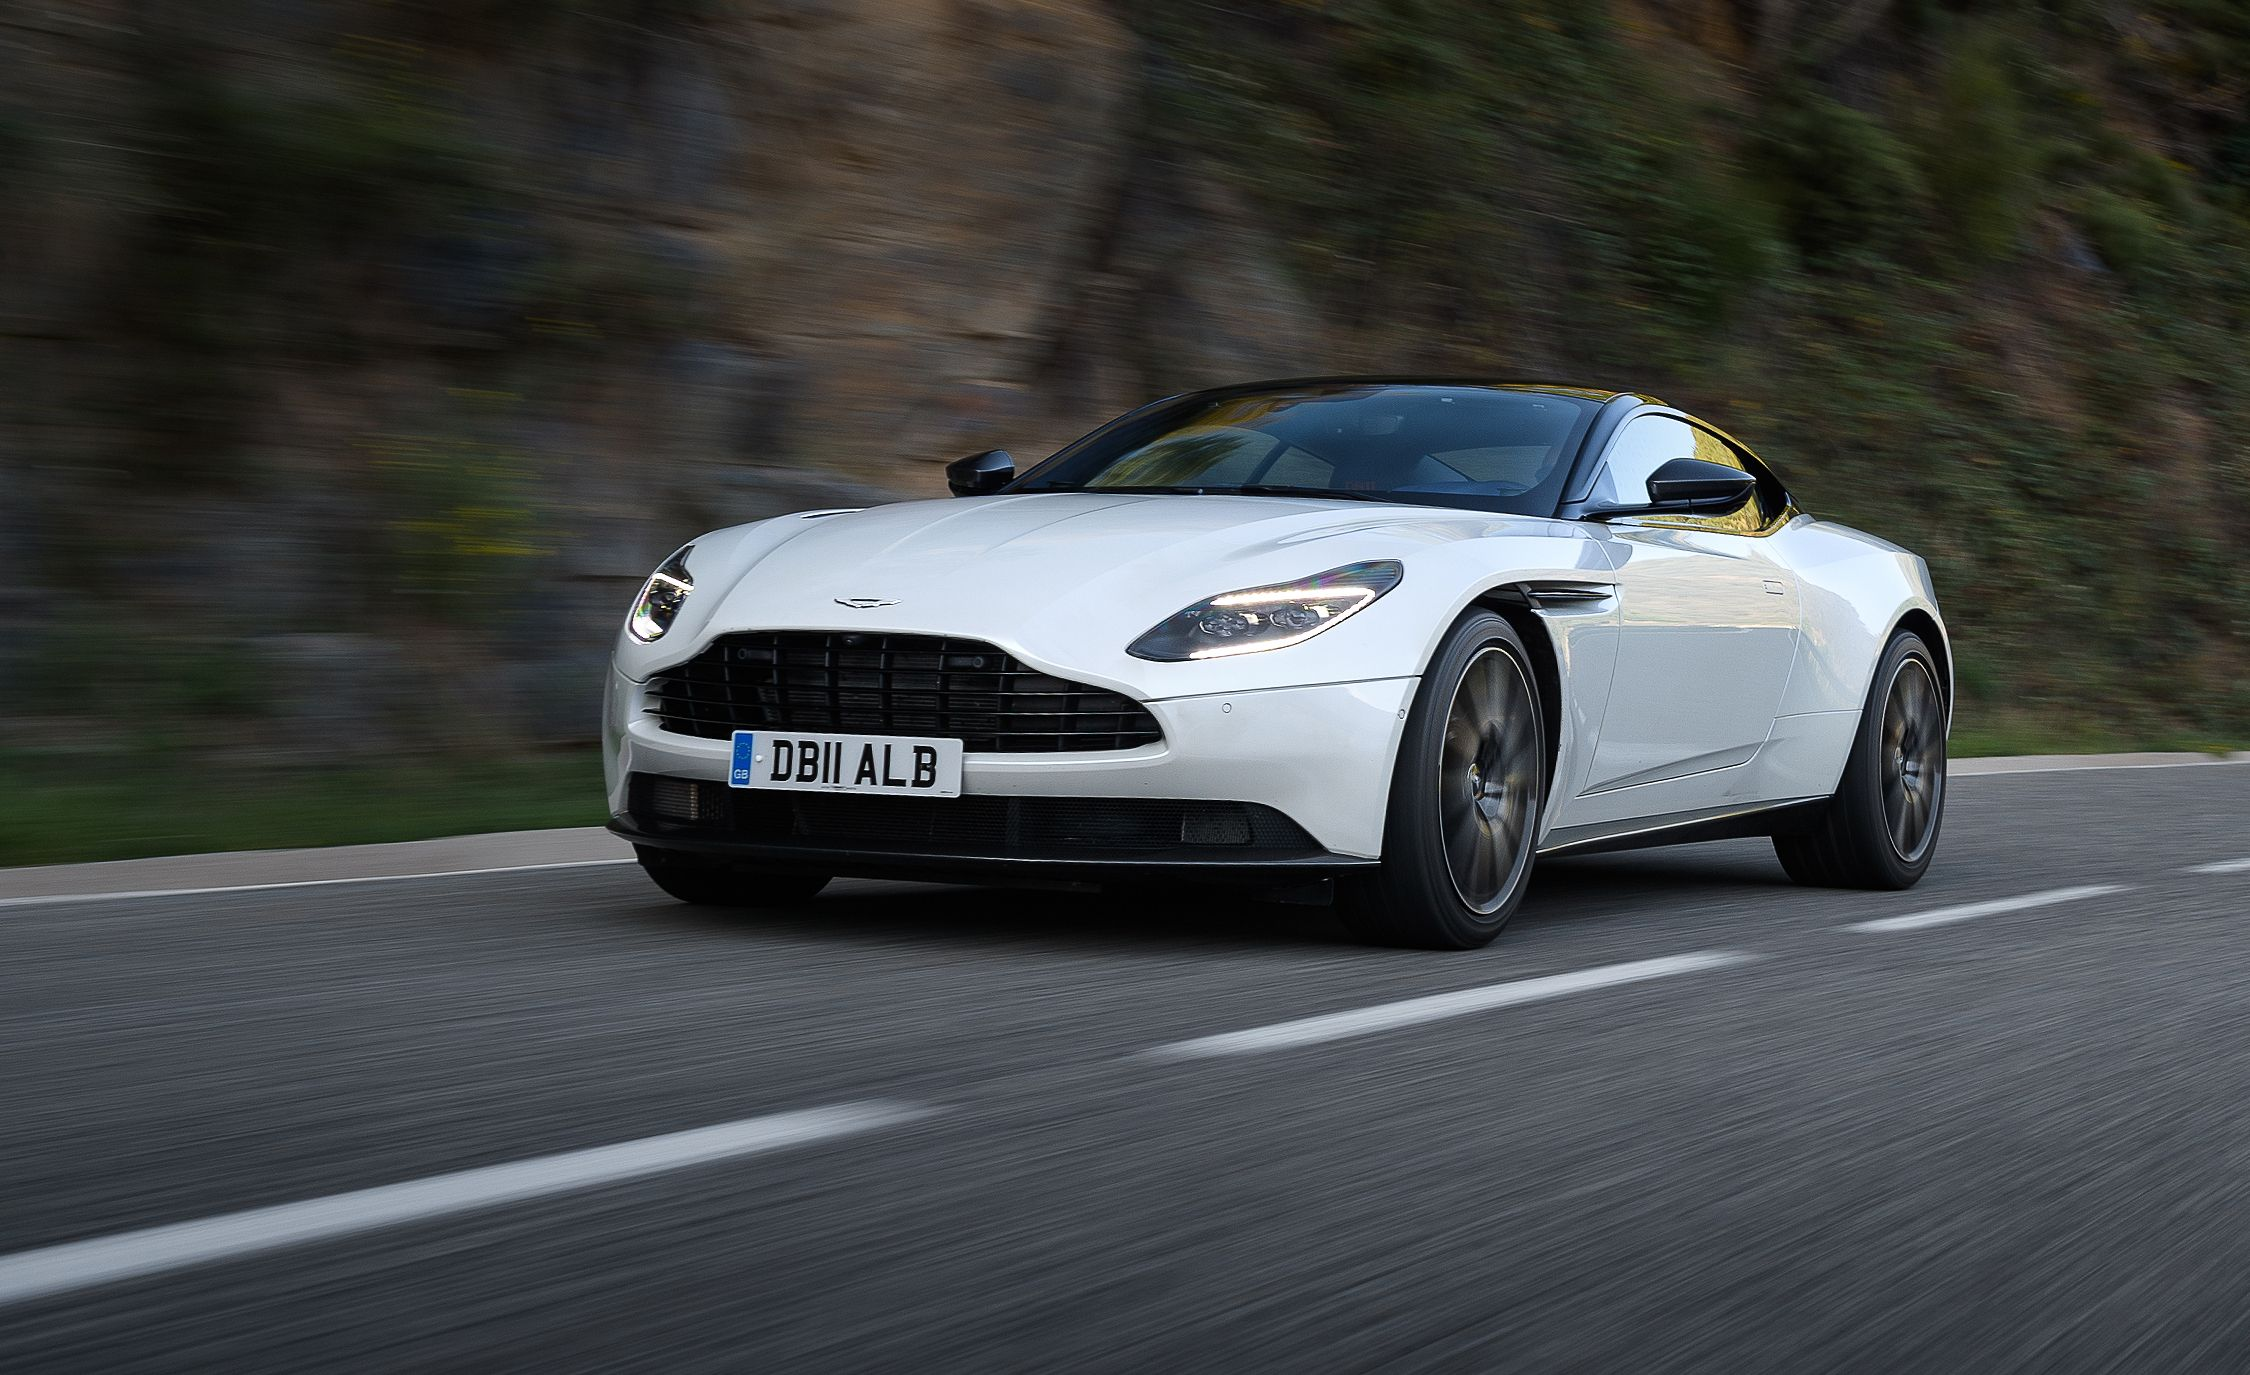 2019 Aston Martin Db11 Volante First Drive Review Car And Driver